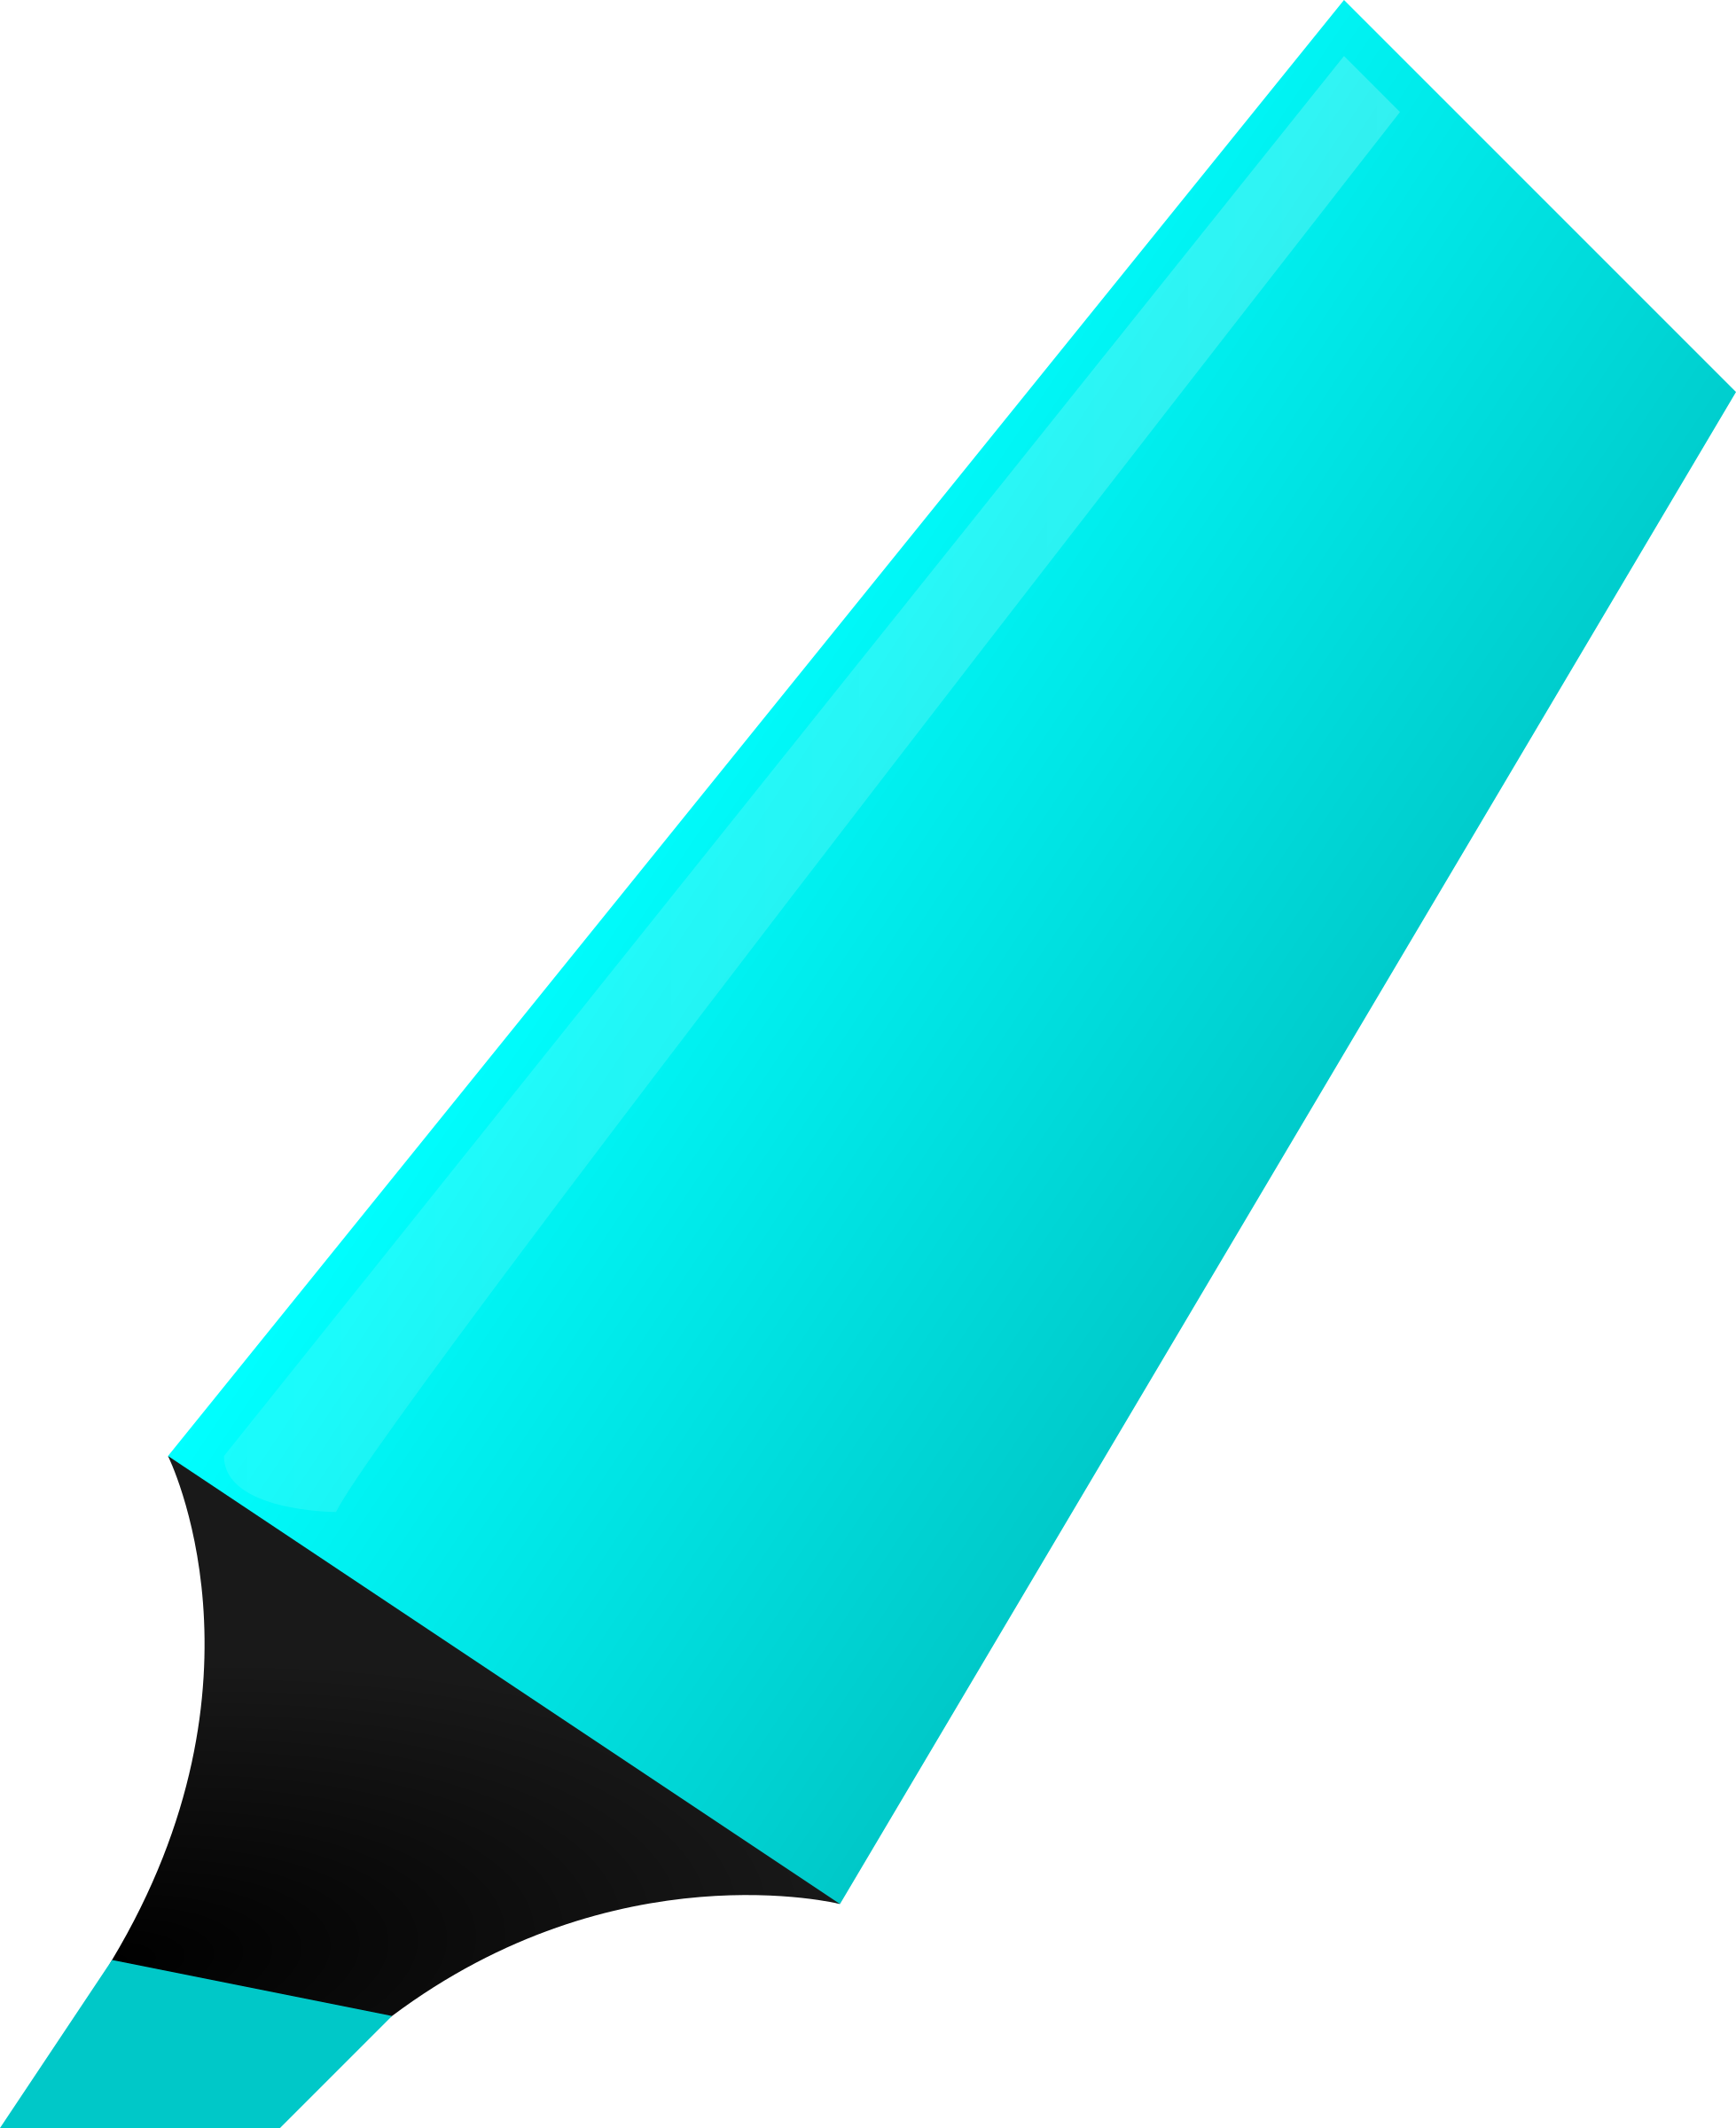 Cyan Highlighter by matheod